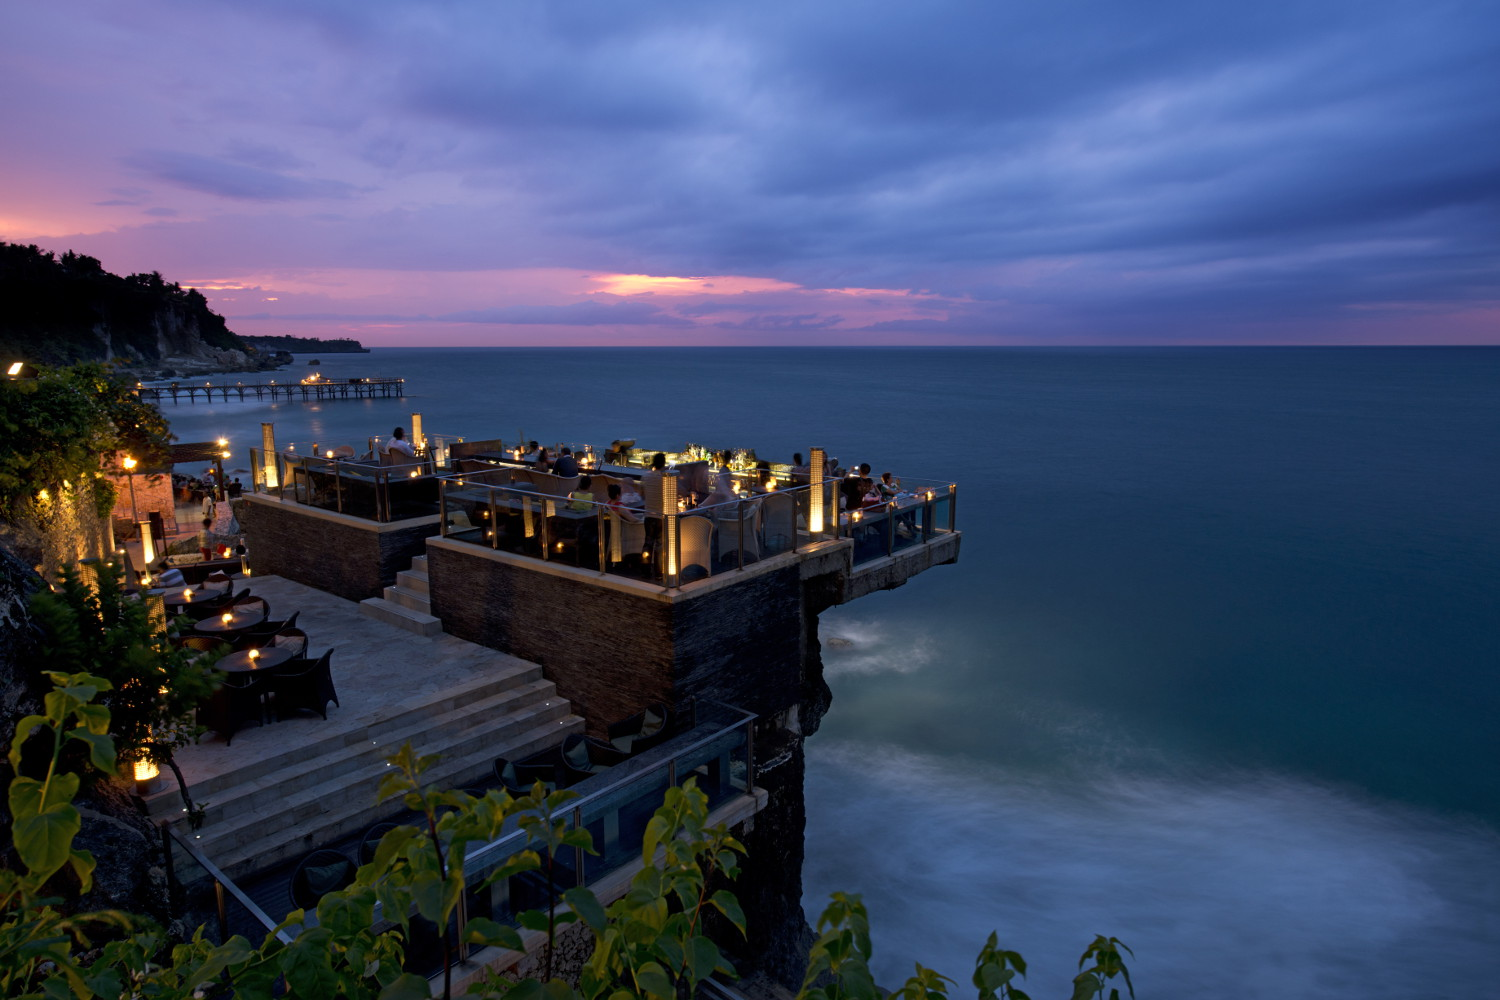 stackliving-beach-bars-rock-bar-bali-indonesia-01